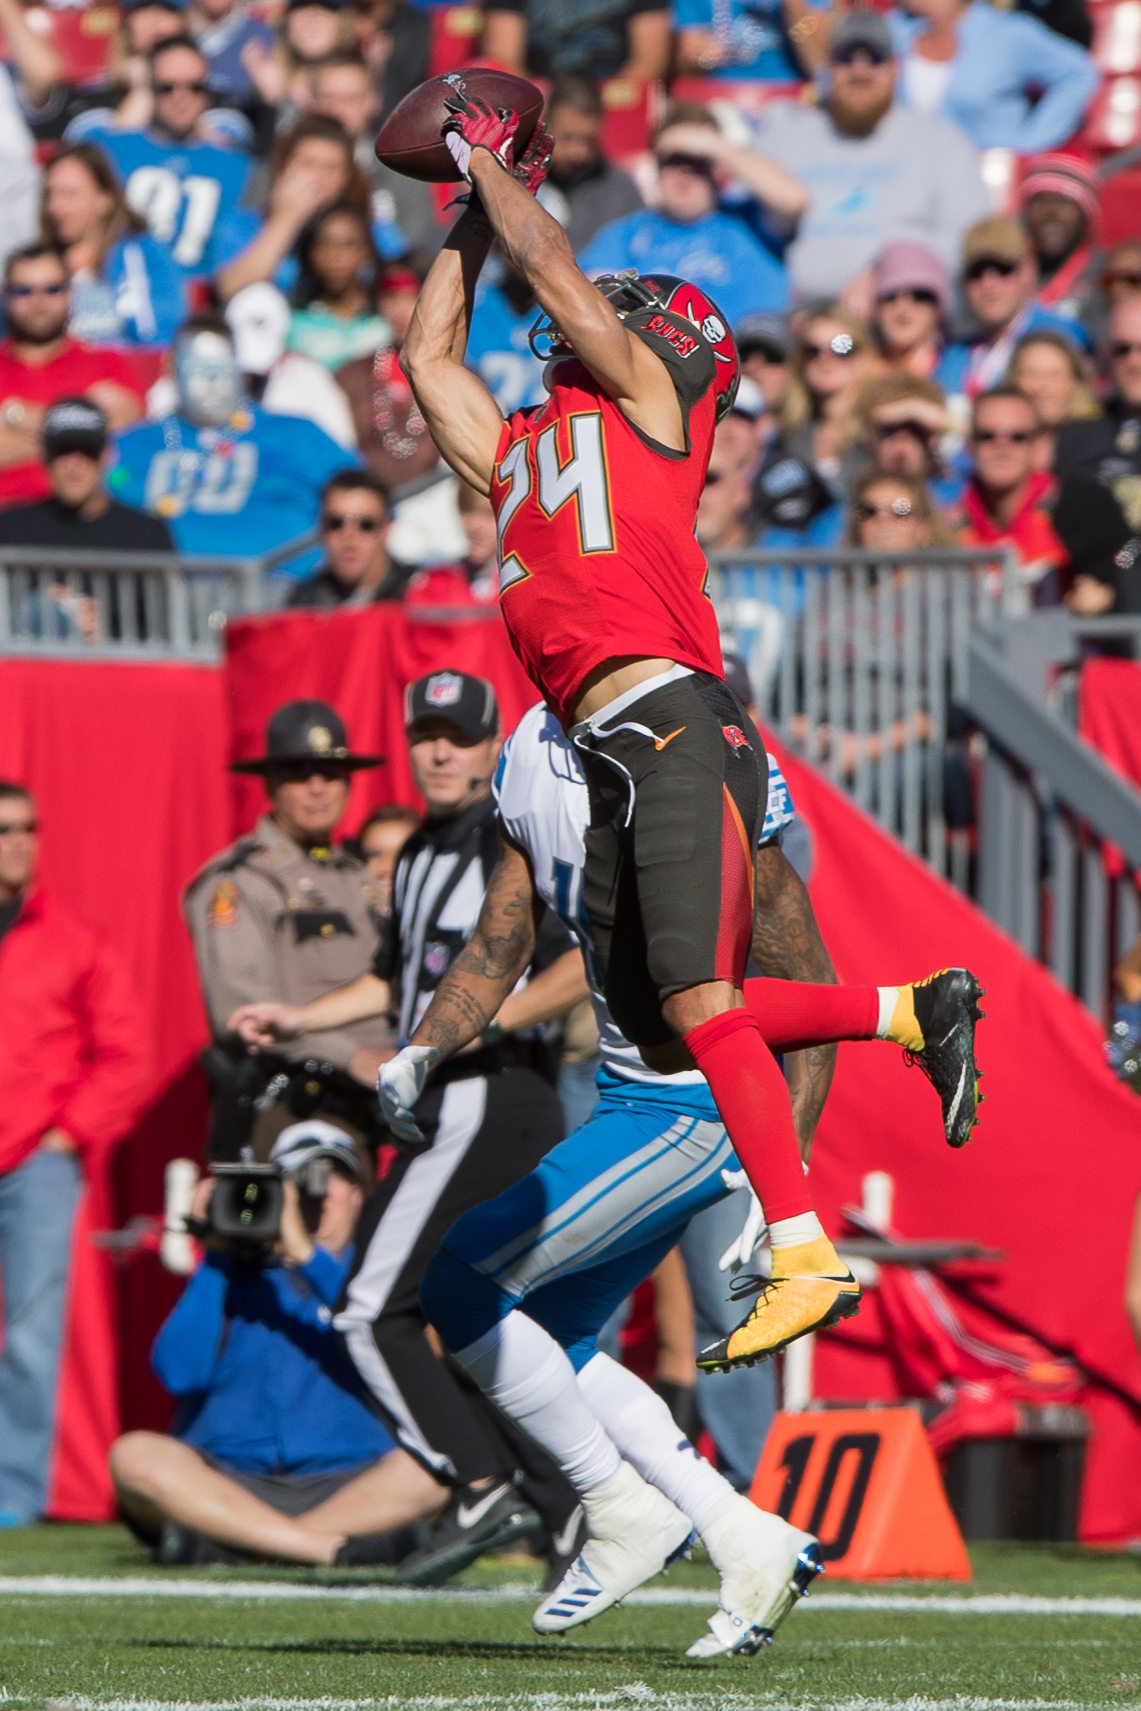 Brent Grimes intercepts a pass./STEVEN MUNCIE